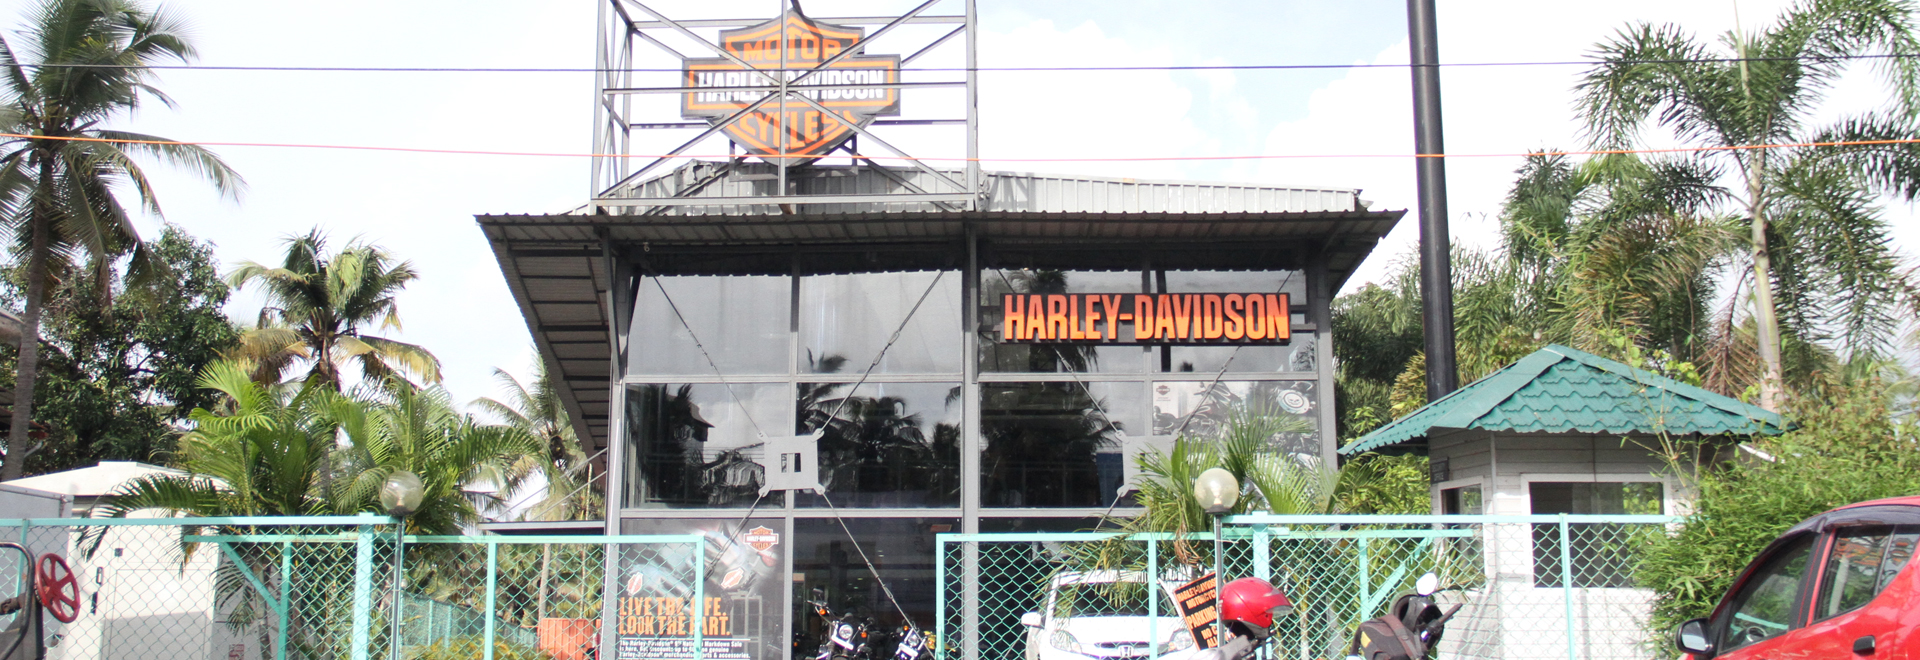 Harley Davidson-Indoor Decorators Works